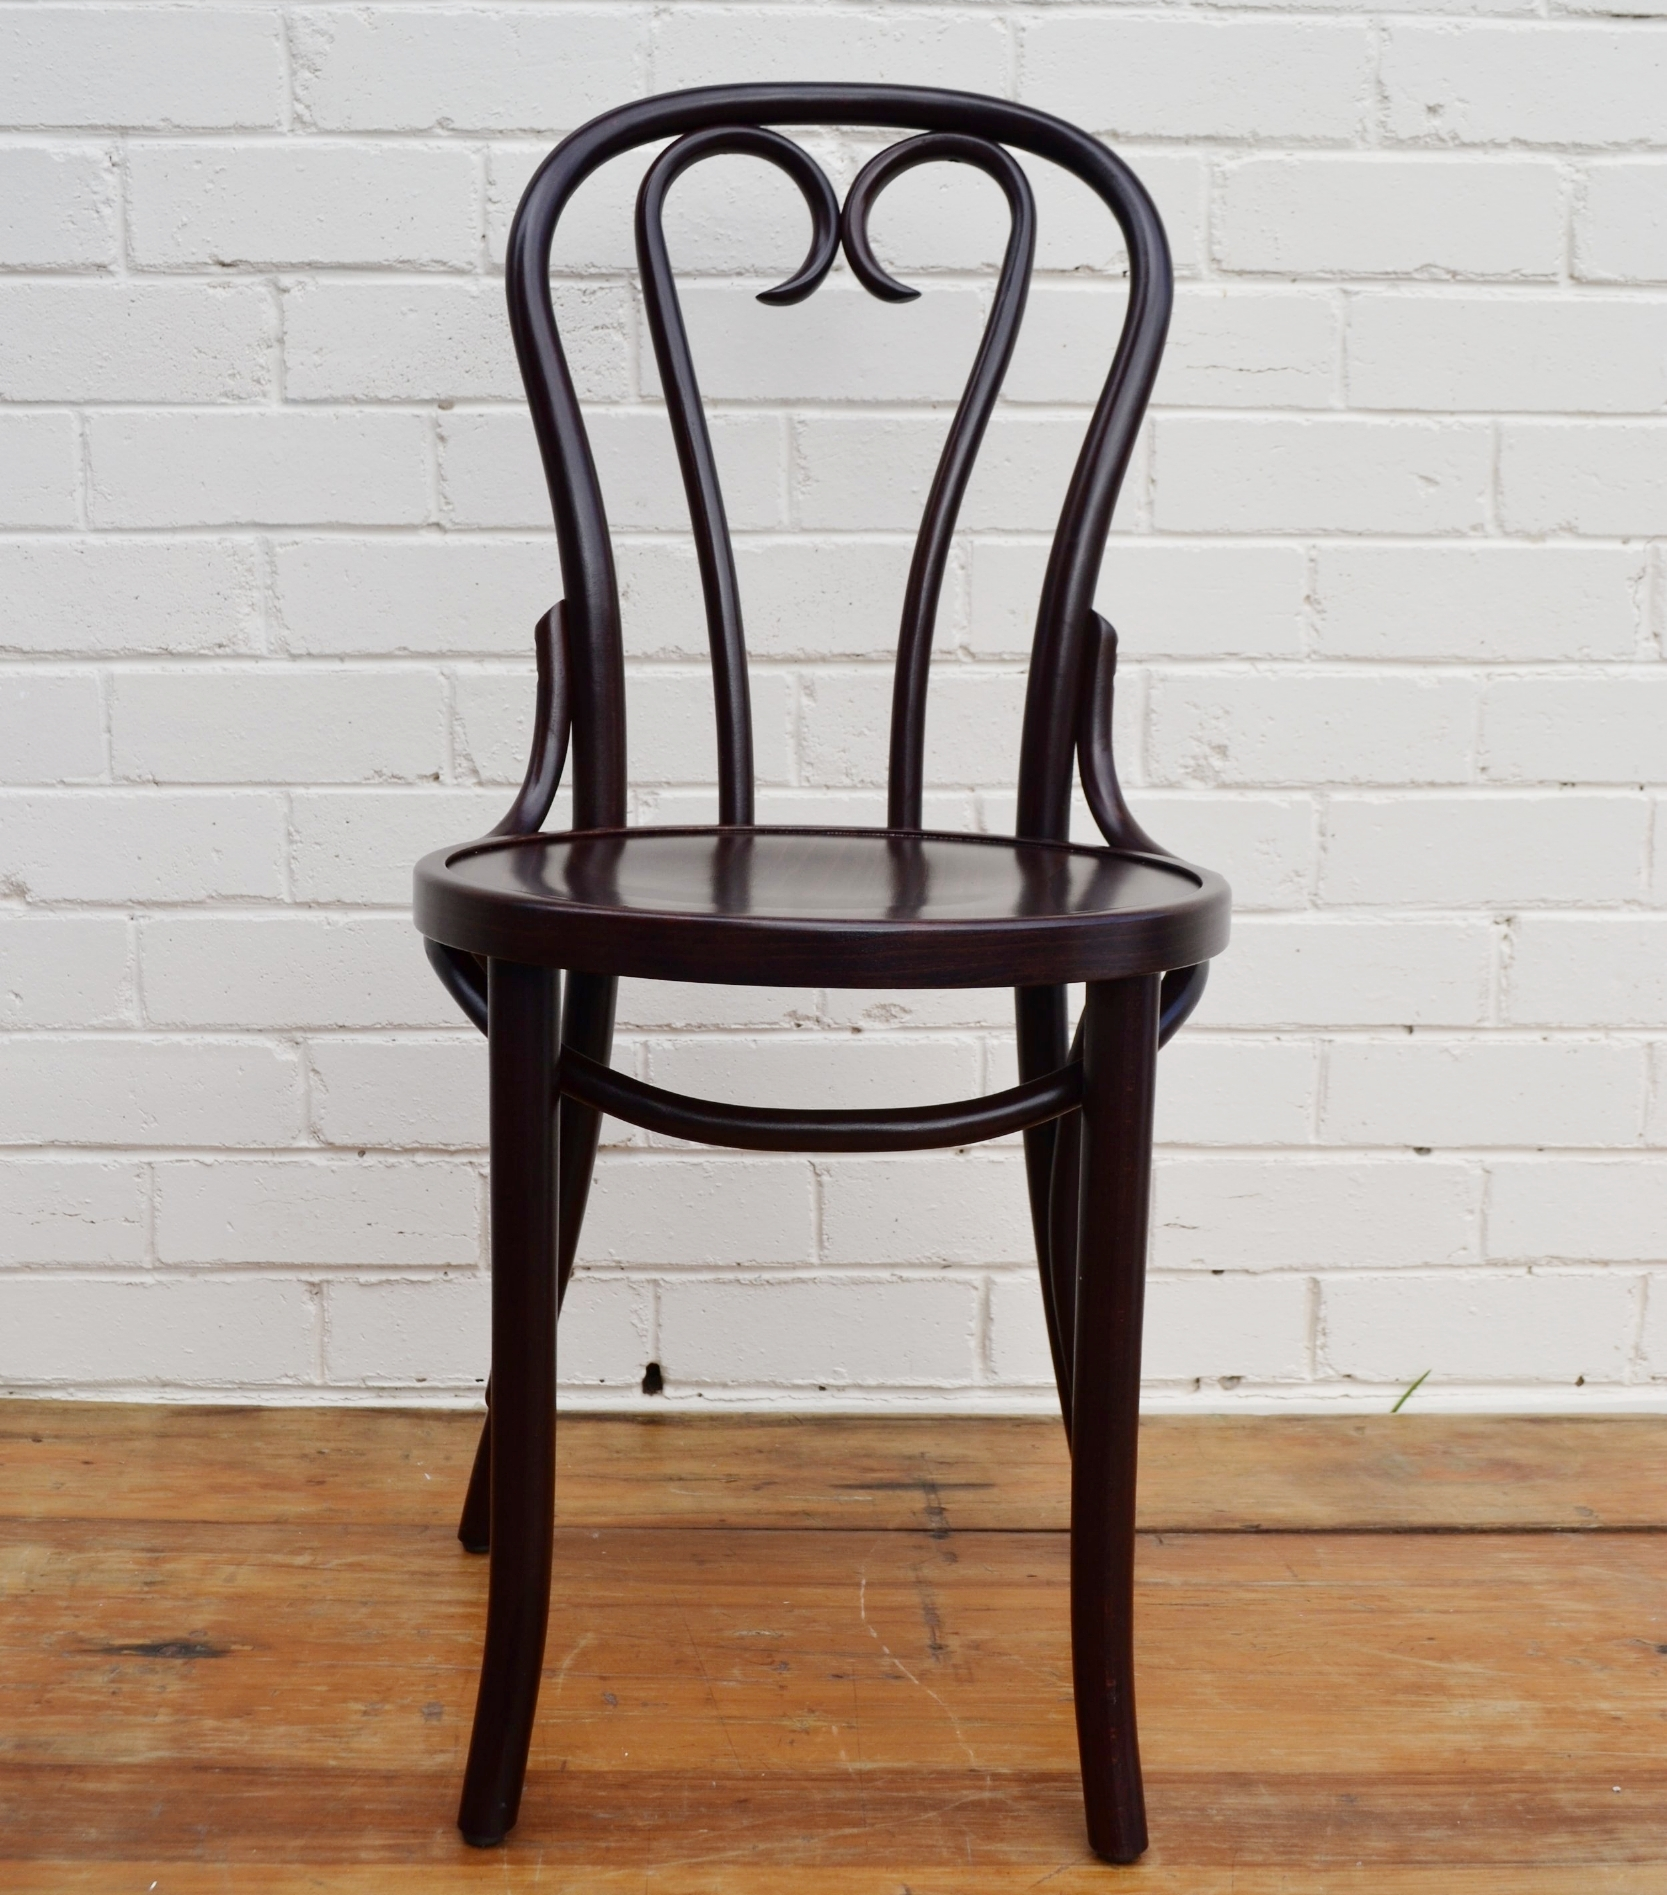 Bentwood Chair - Heart signing chairs